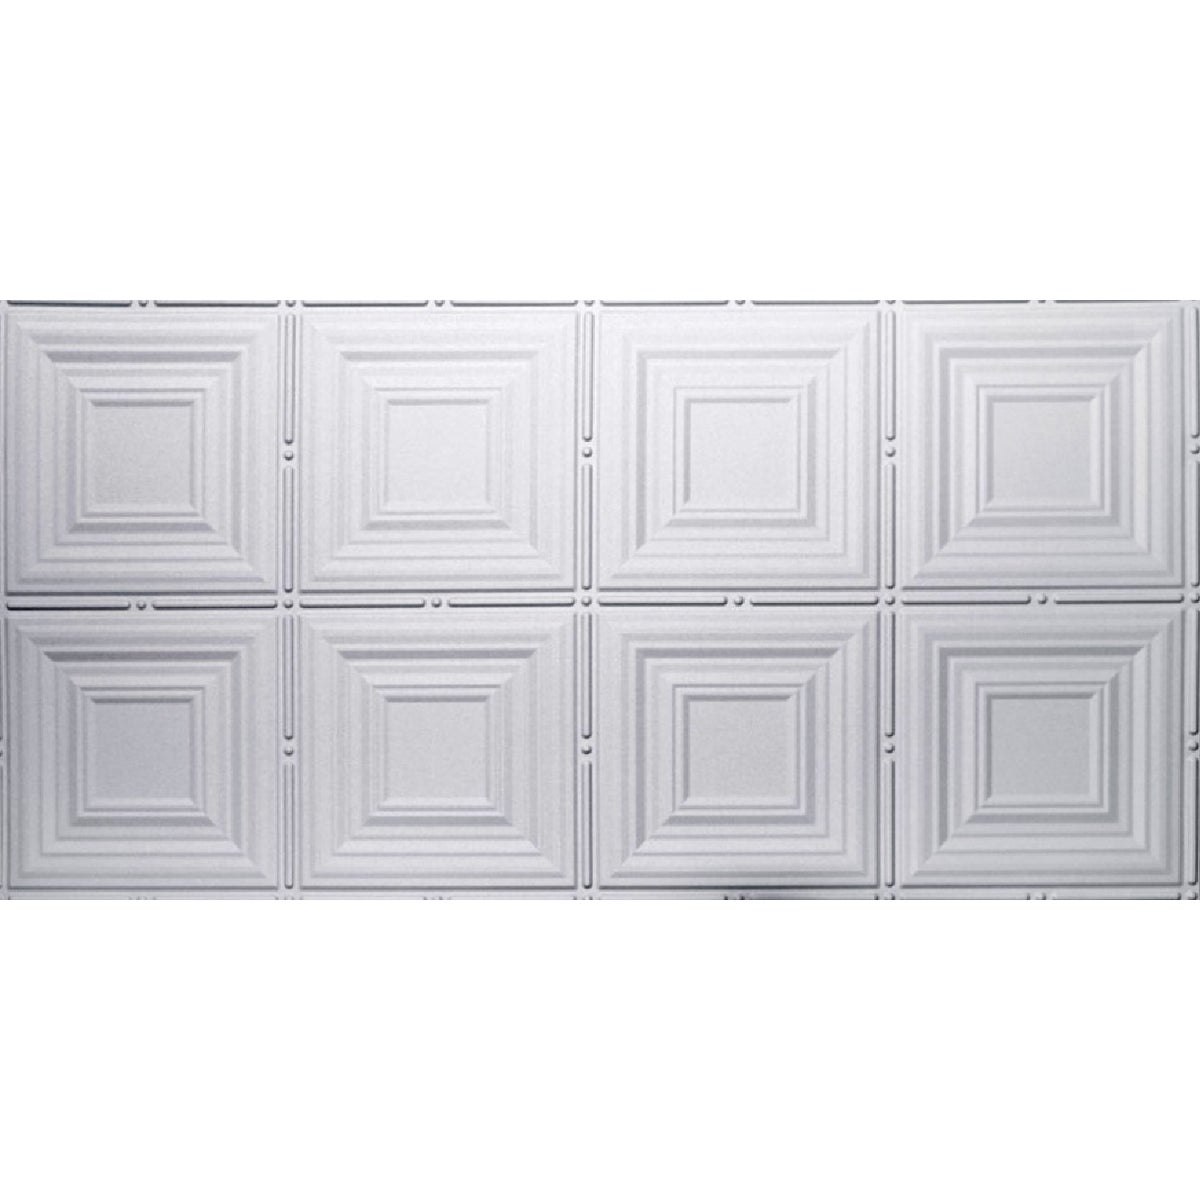 2X4 WHITE TIN-LOOK PANEL - 320 by Global Specialty Pro